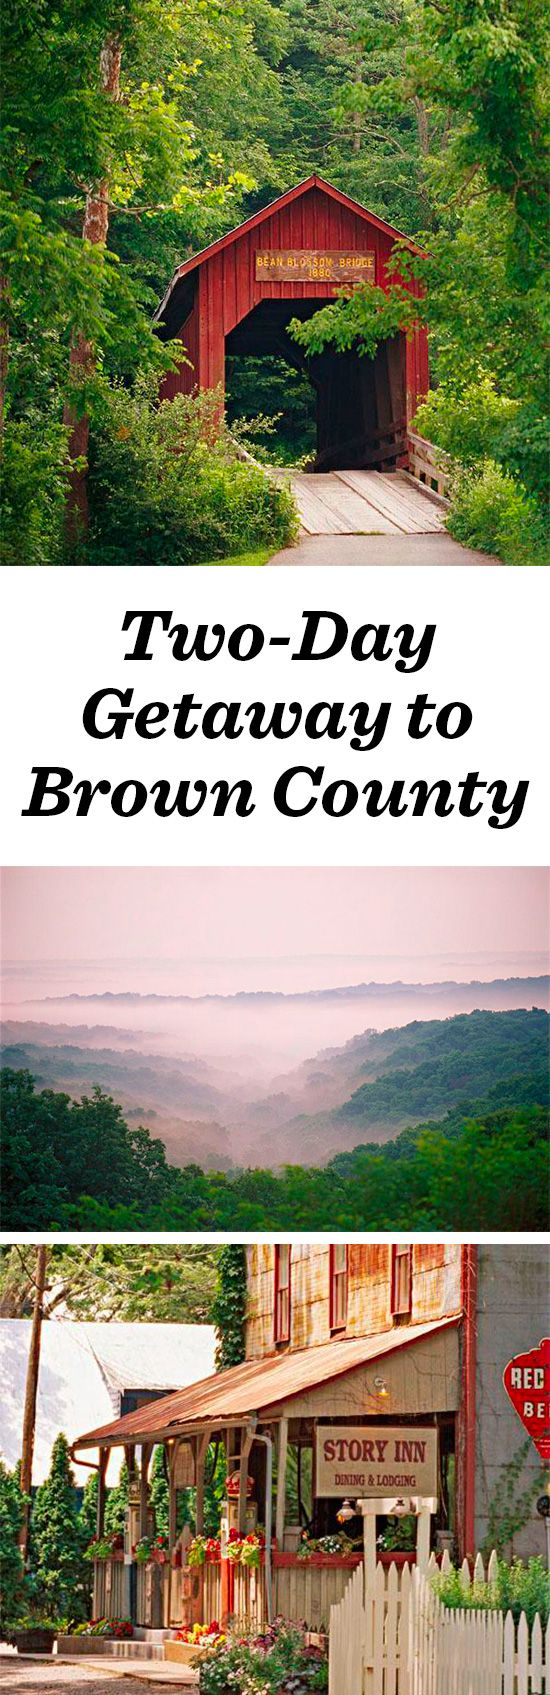 In addition to a significant art scene, Nashville, Indiana, has cool boutiques, classy inns and tree-filled vistas, all part of Brown County: http://www.midwestliving.com/travel/indiana/brown-county/two–day-getaway-nashville-and-brown-county/ #nashvilleindiana #indiana #browncounty